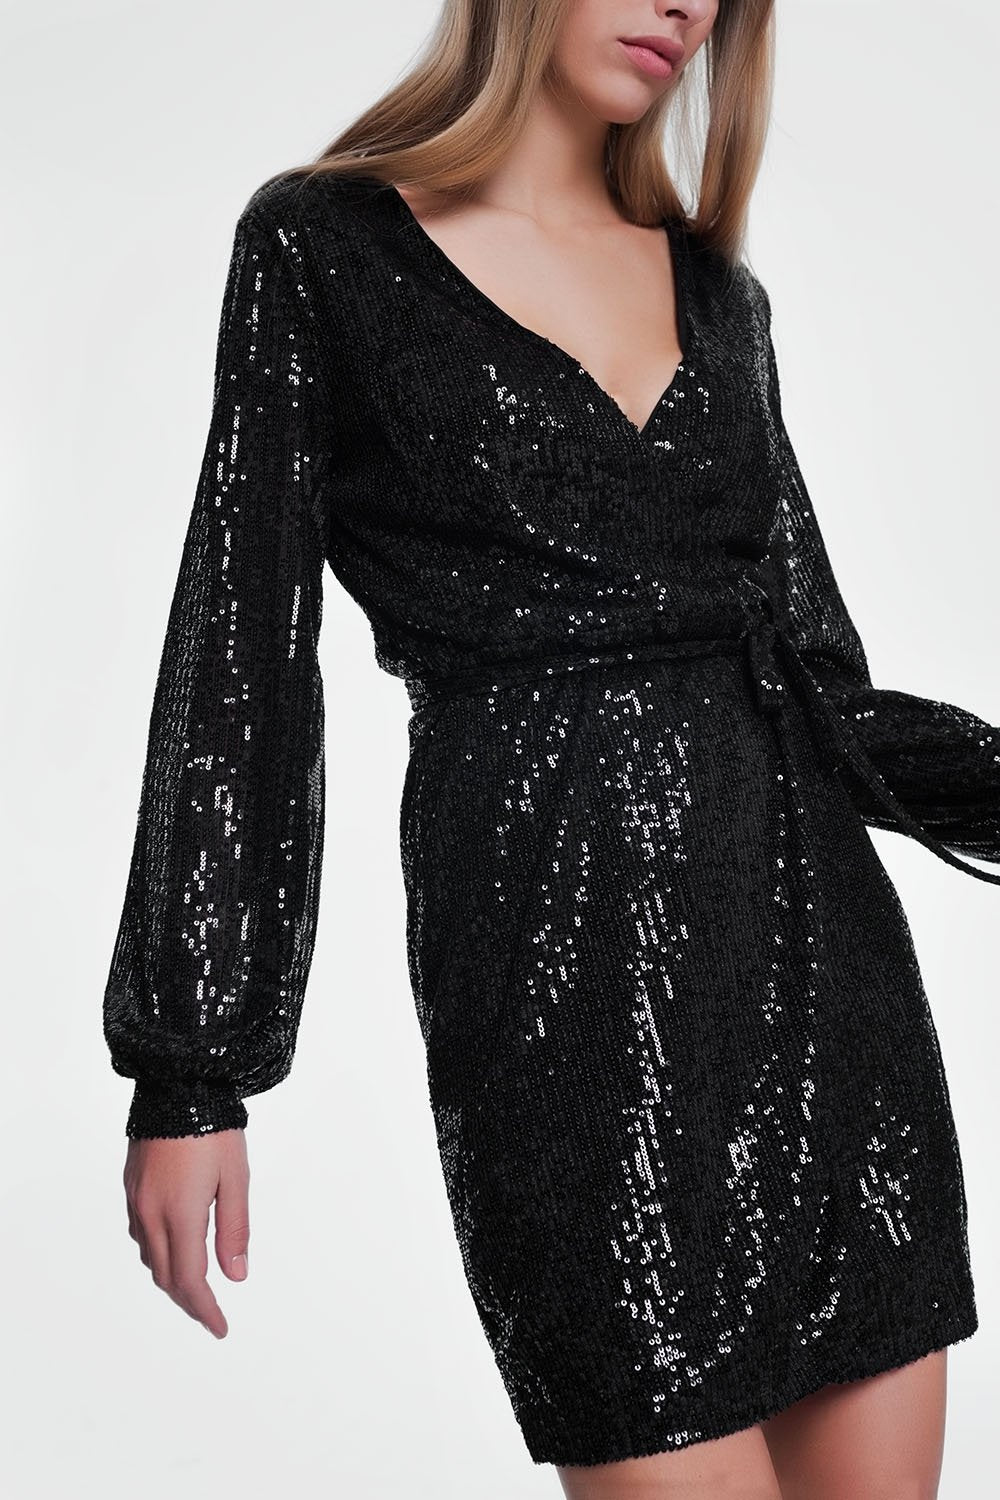 Black Nightdress With Long Sleeves - KATANA FASHION BOUTIQUE